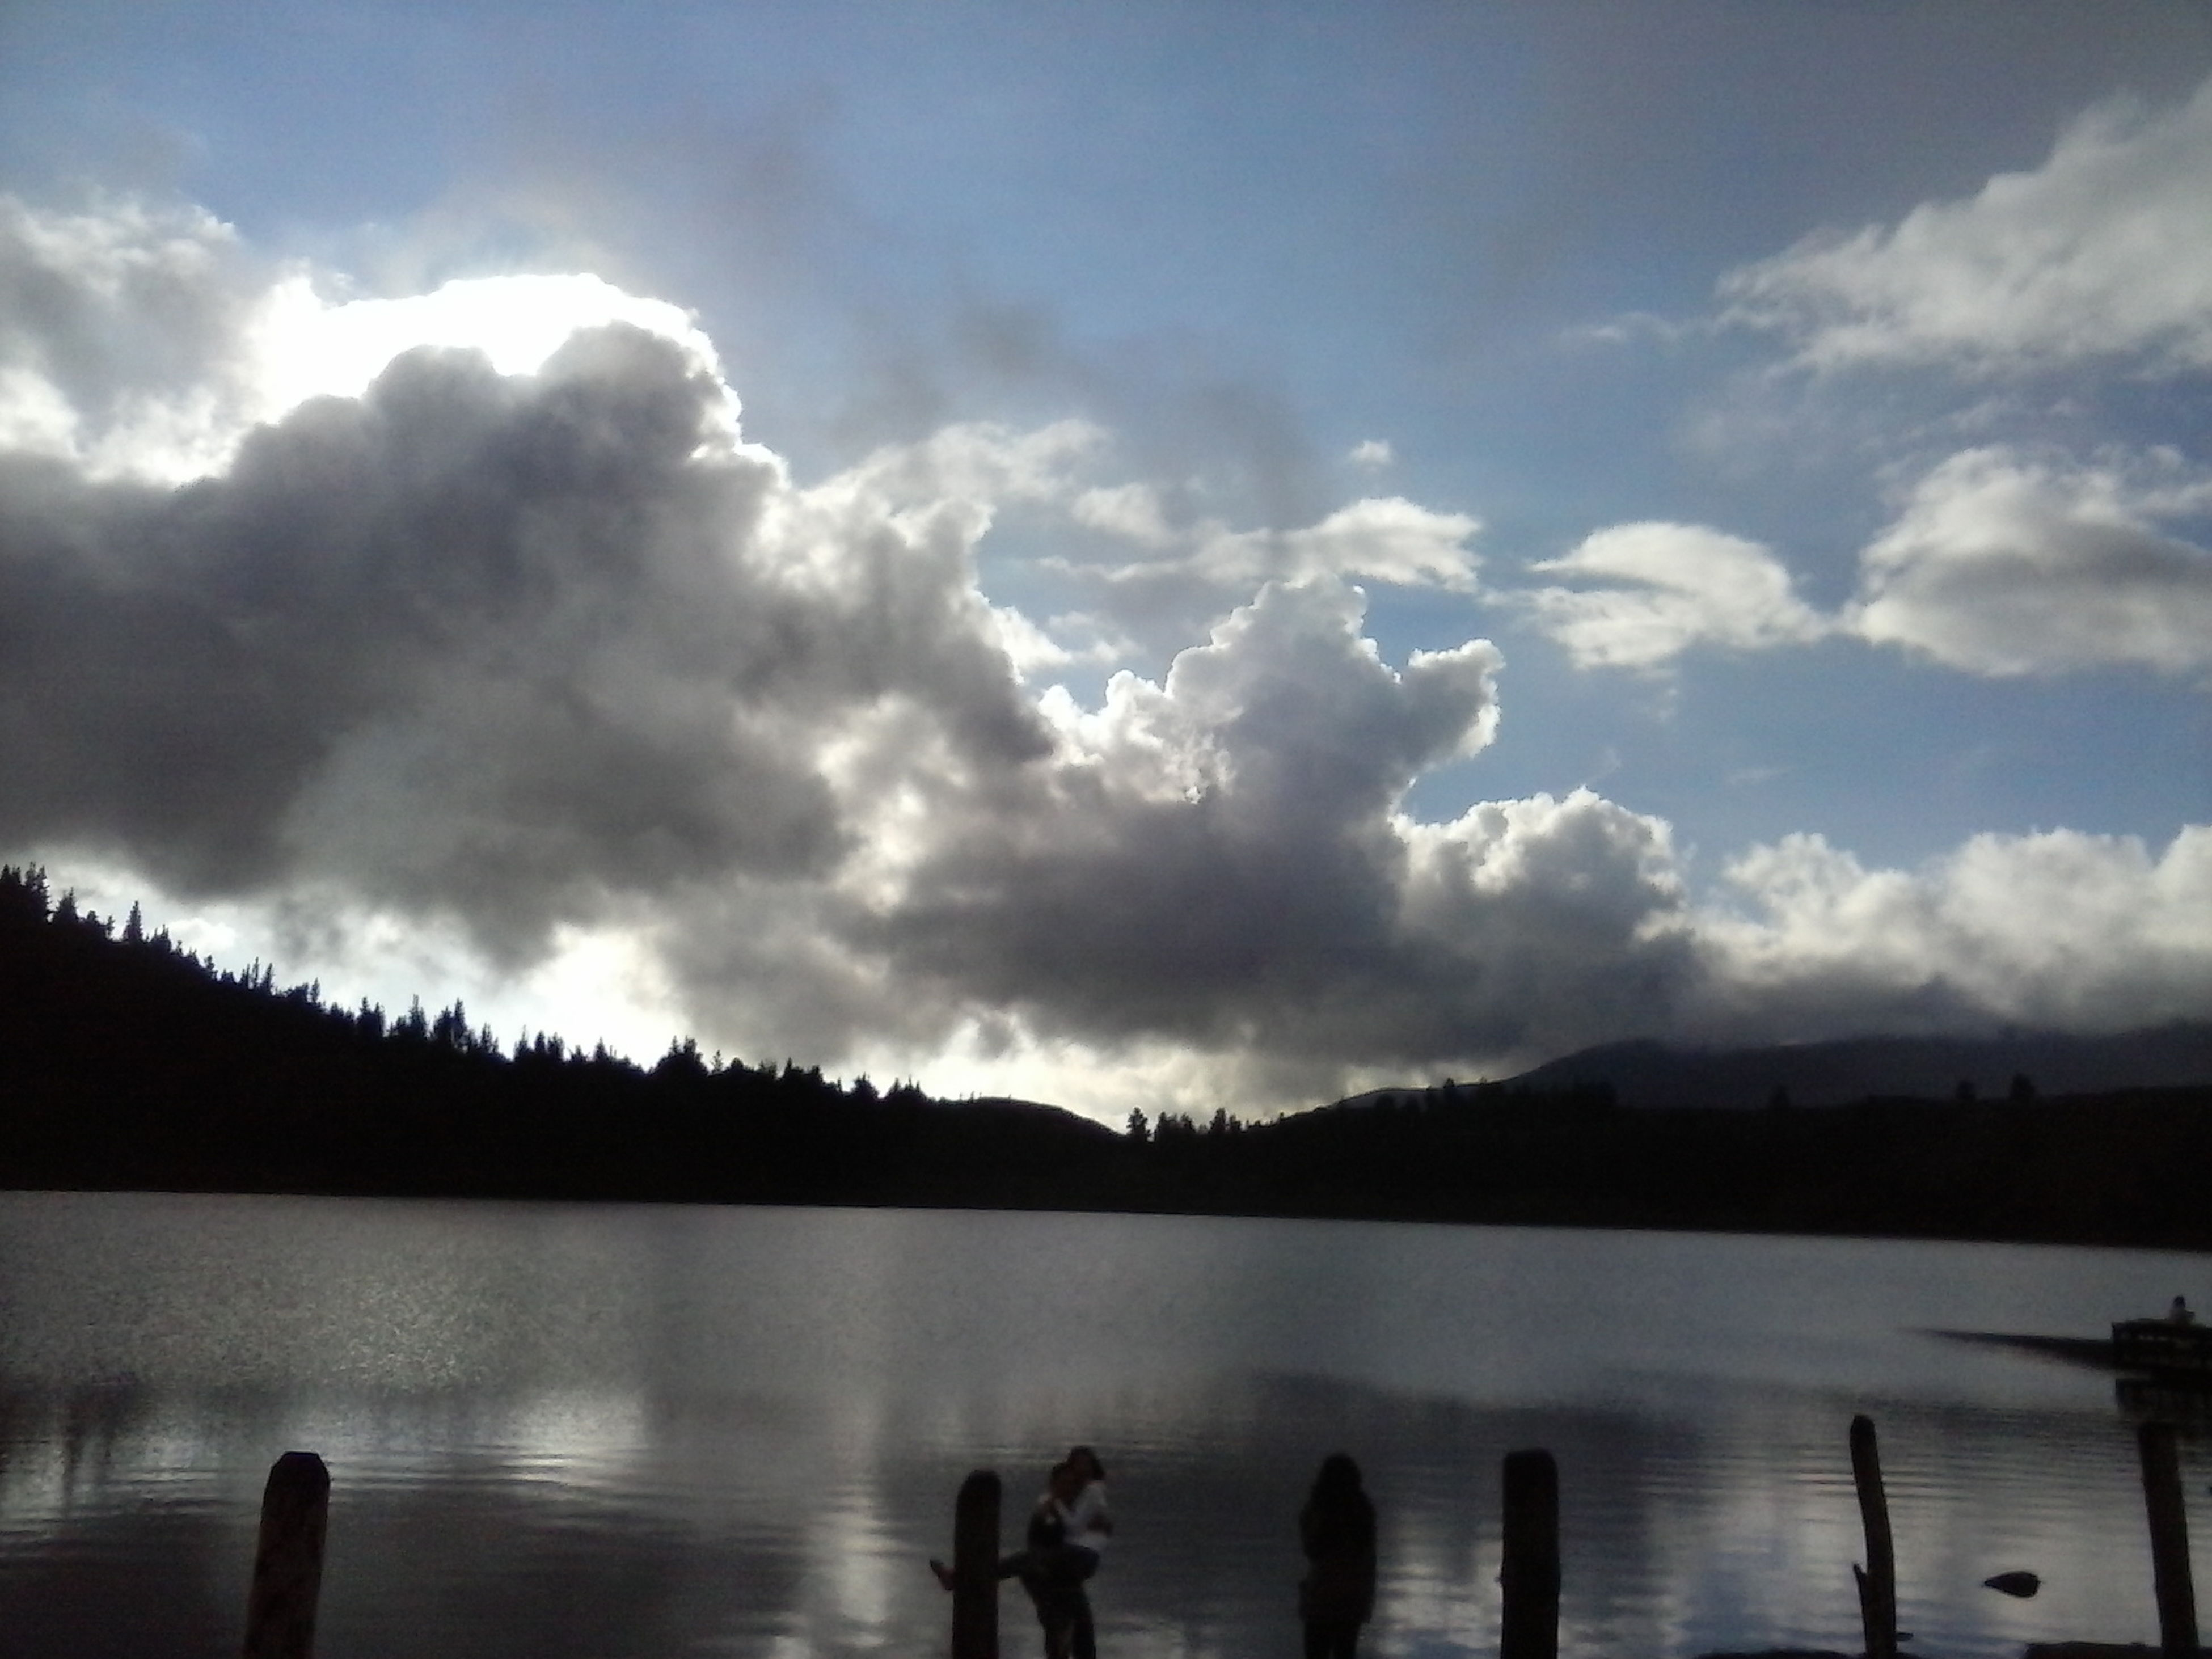 water, sky, cloud - sky, lake, tranquility, tranquil scene, silhouette, scenics, cloudy, beauty in nature, reflection, nature, cloud, river, mountain, idyllic, men, lakeshore